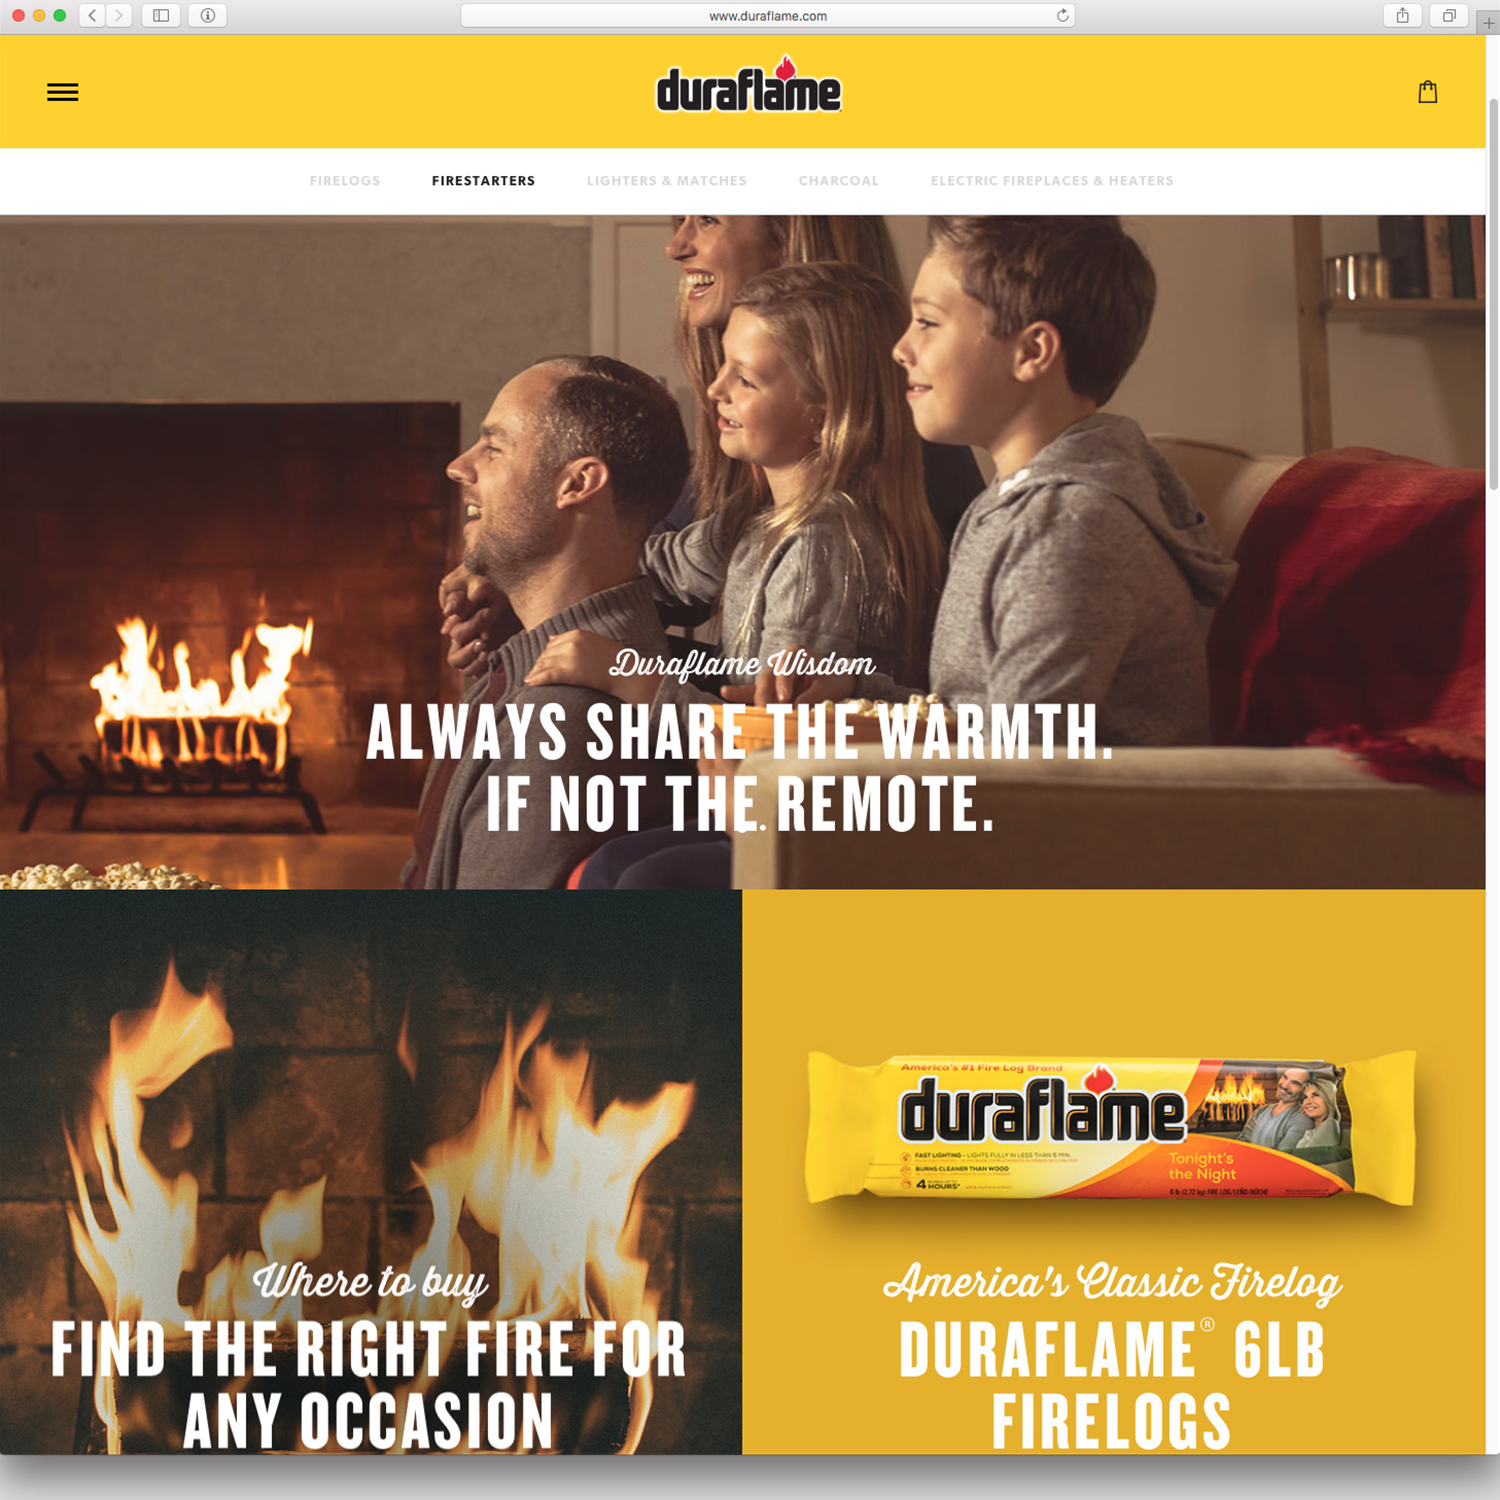 Homepage of the new Duraflame website created by Teak